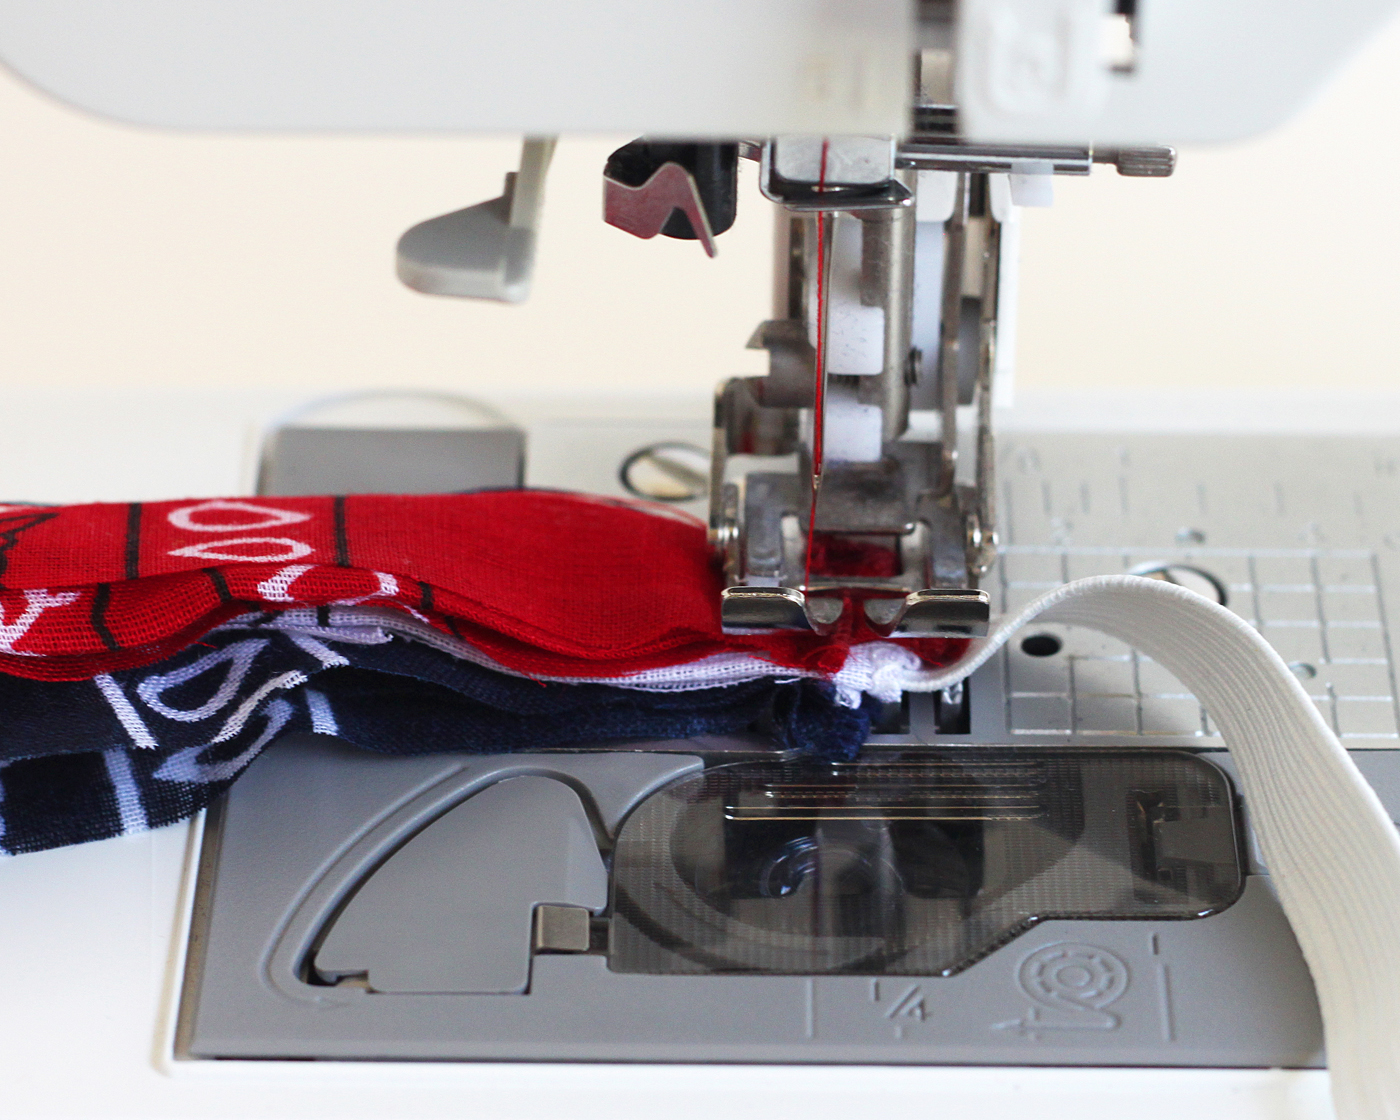 Sewing elastic into bandanas with a sewing machine